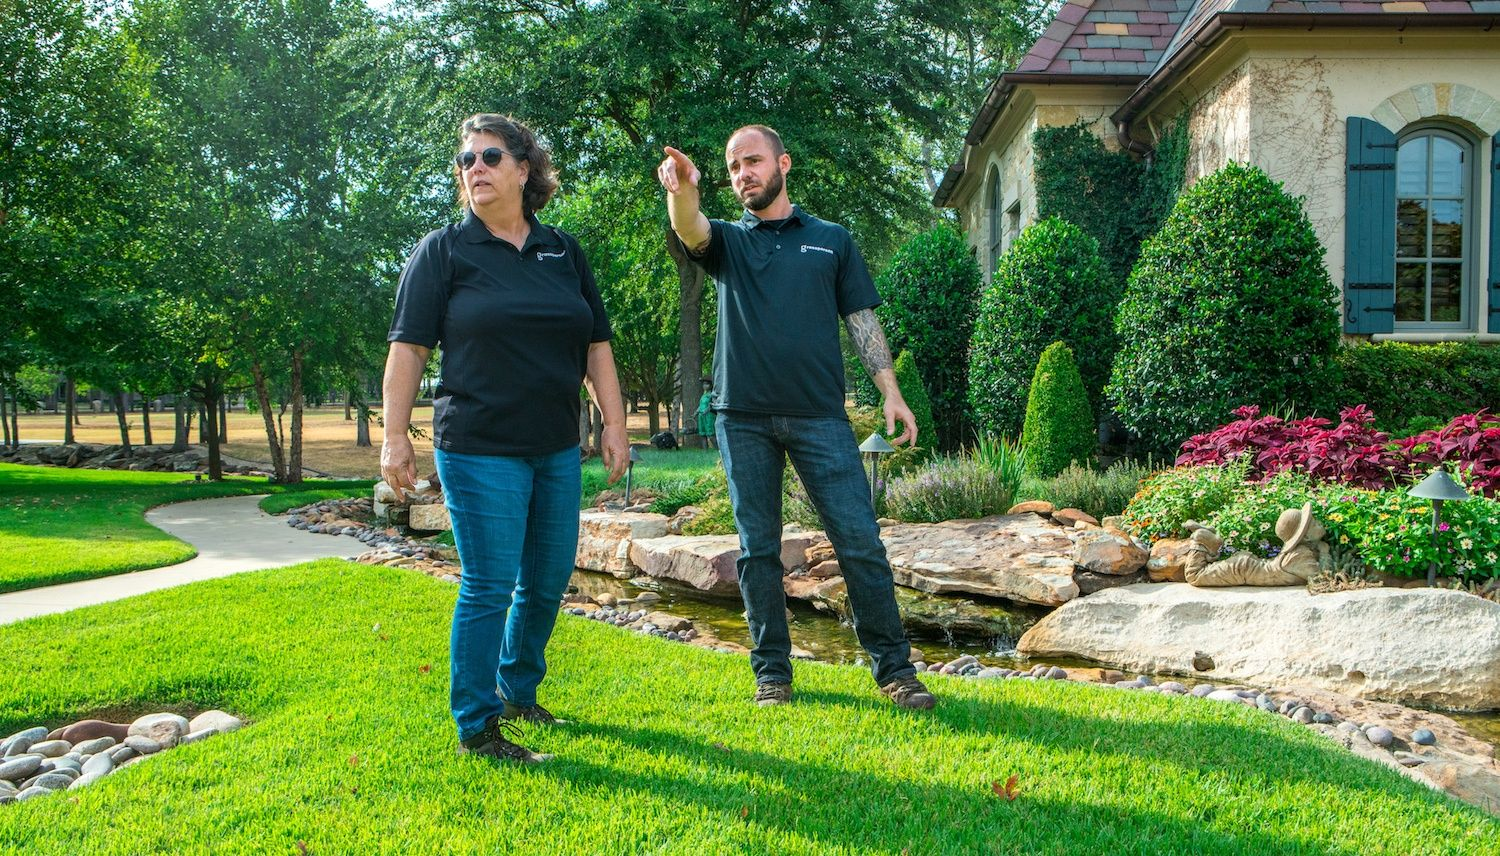 lawn care professionals looking for lawn disease